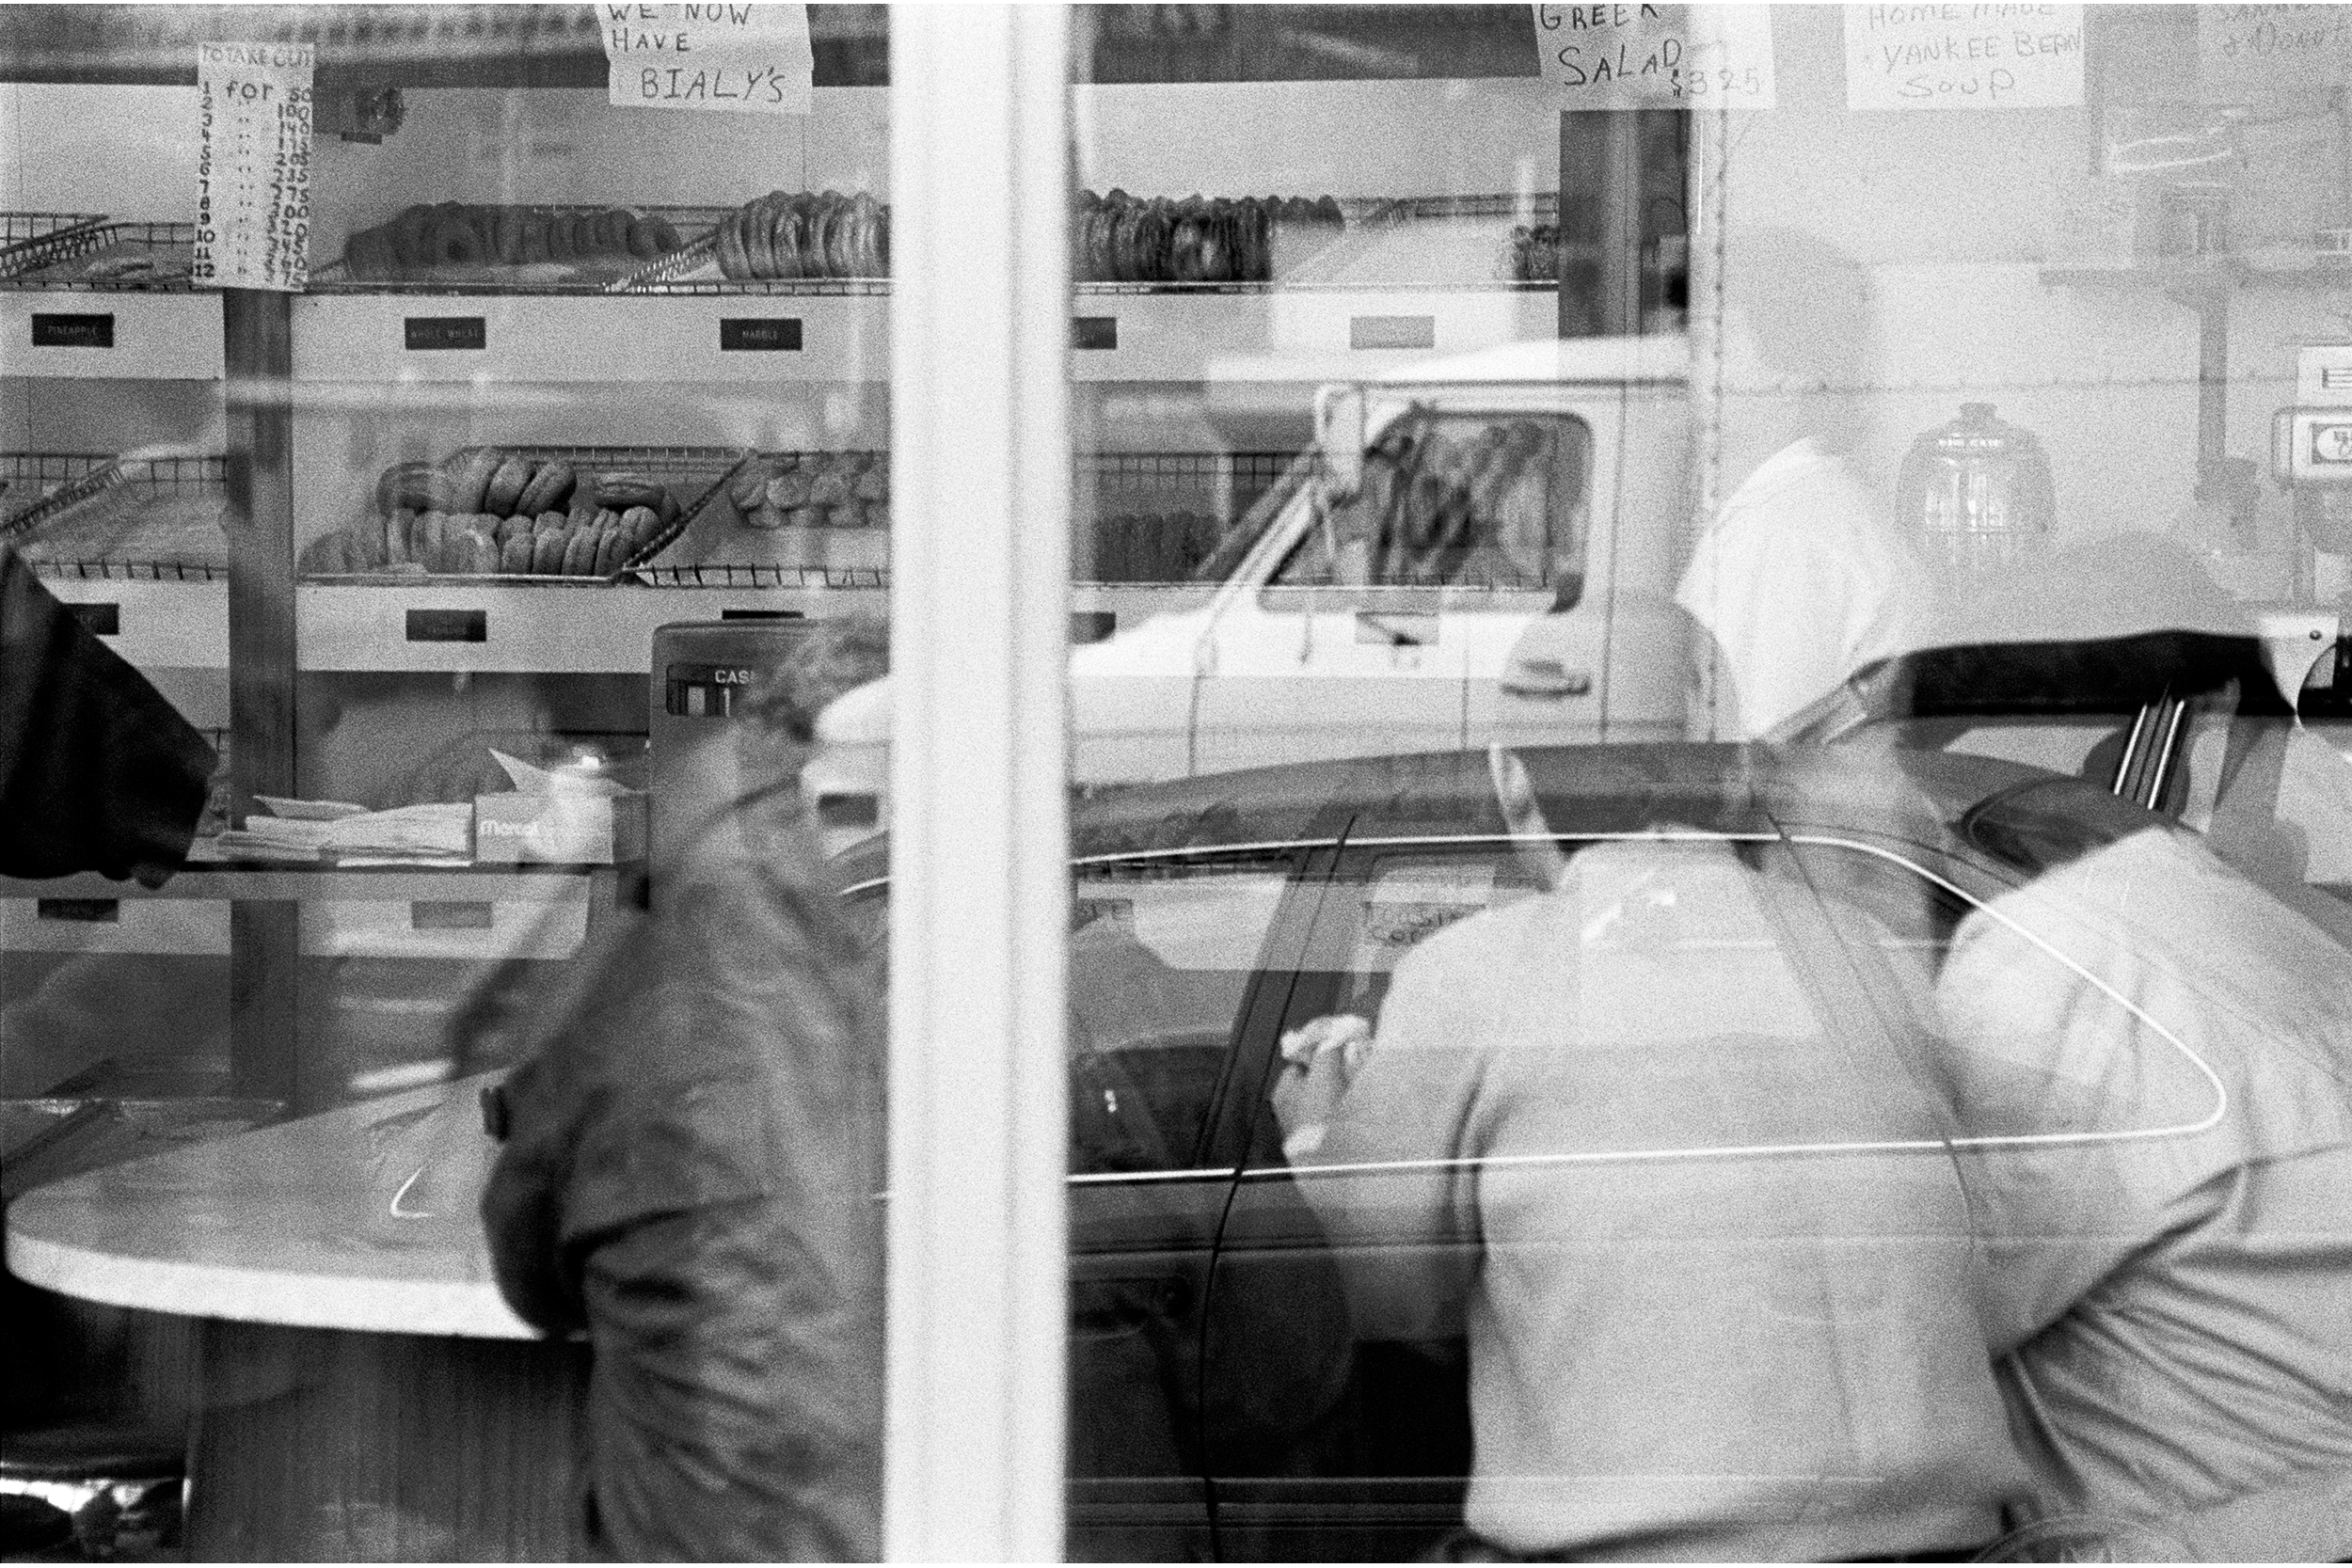 Donut Shop at Union Square, c 1988